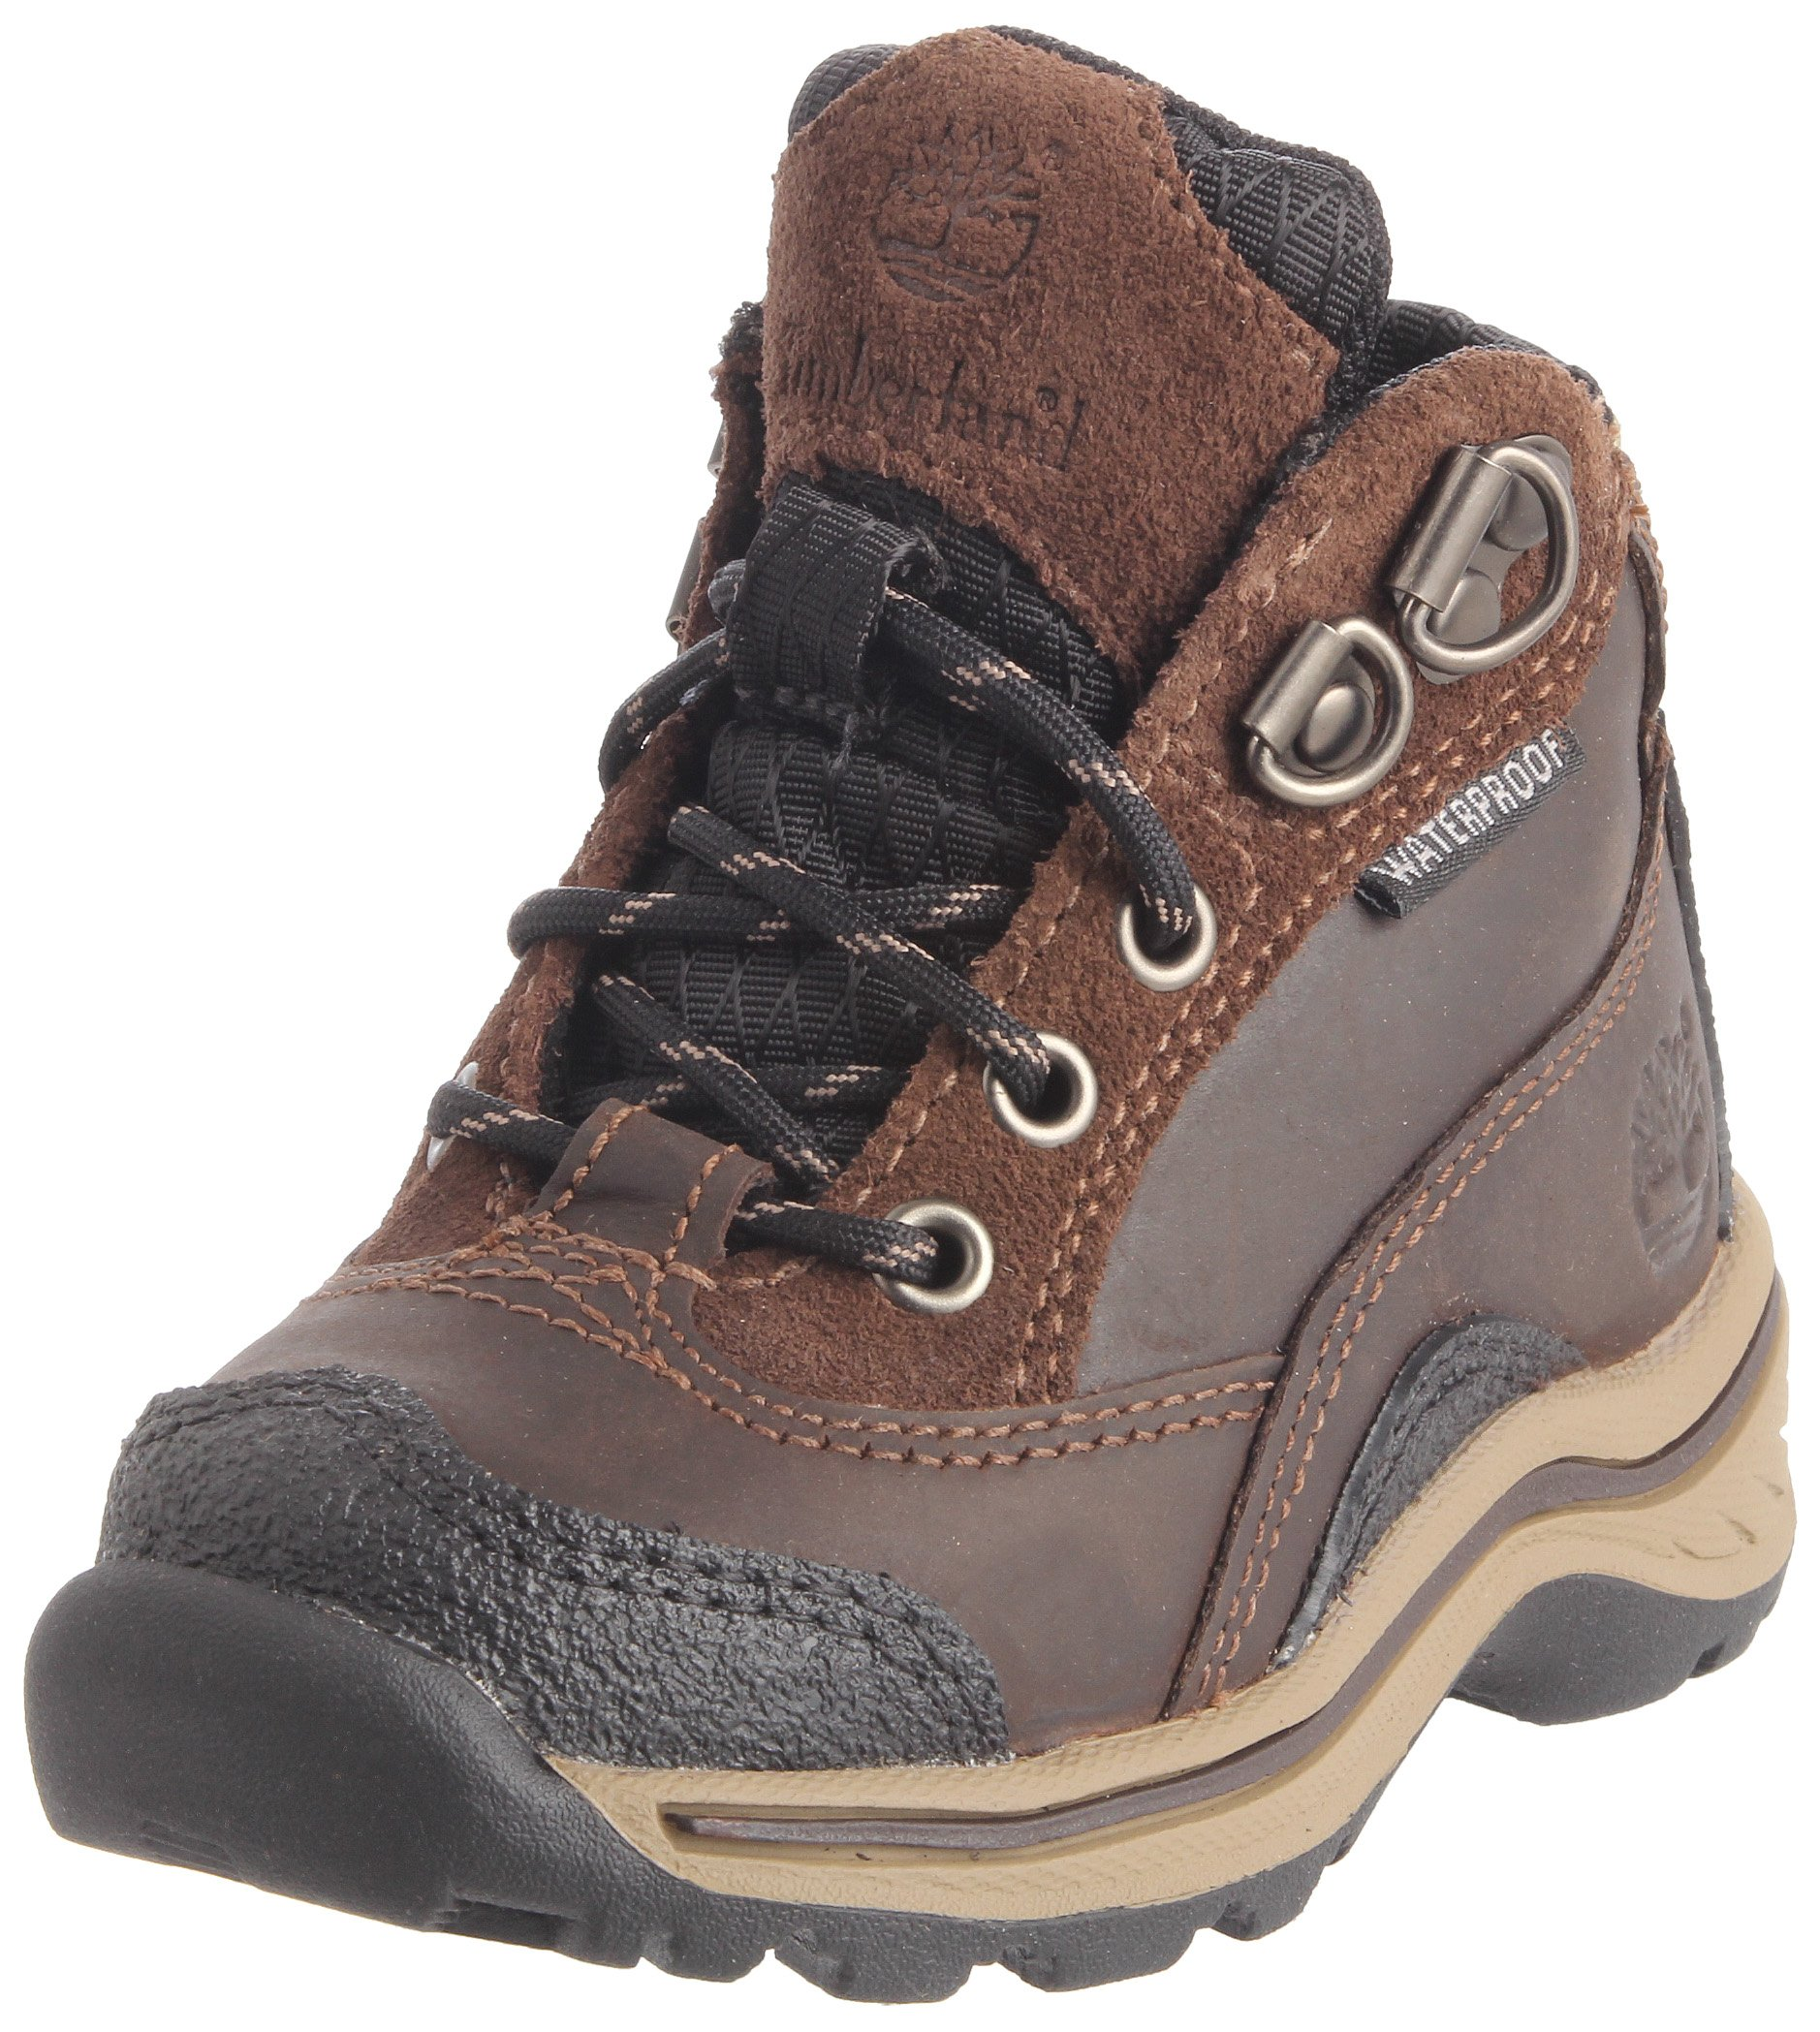 Timberland Pawtuckaway, Unisex-Child Hiking Shoes 1